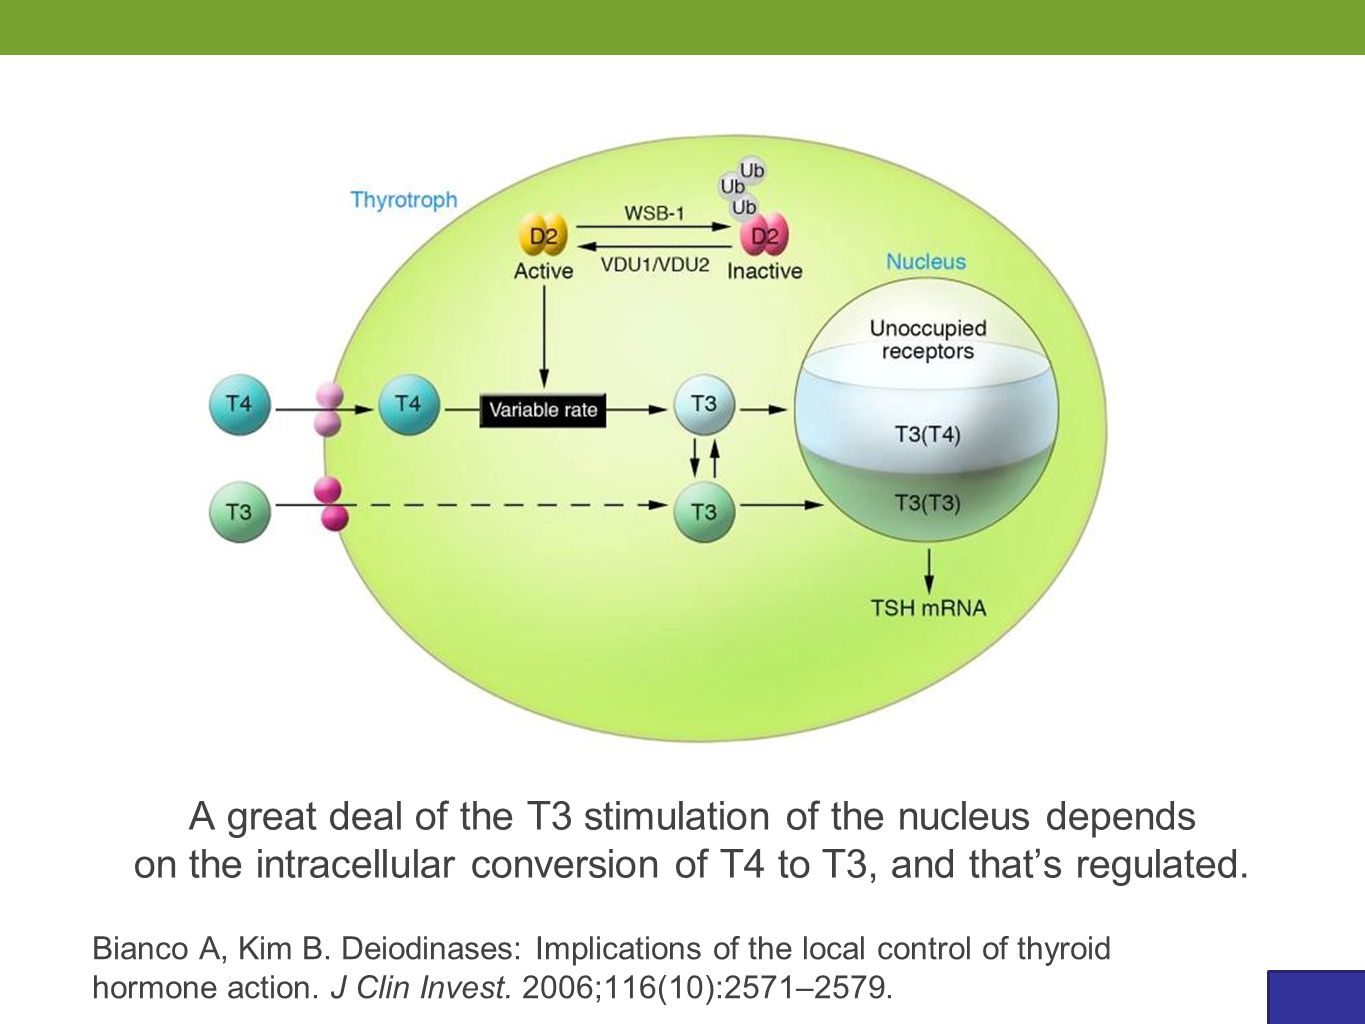 A great deal of the T3 stimulation of the nucleus depends on the intracellular conversion of T4 to T3, and that's regulated. Bianco A, Kim B. Deiodina